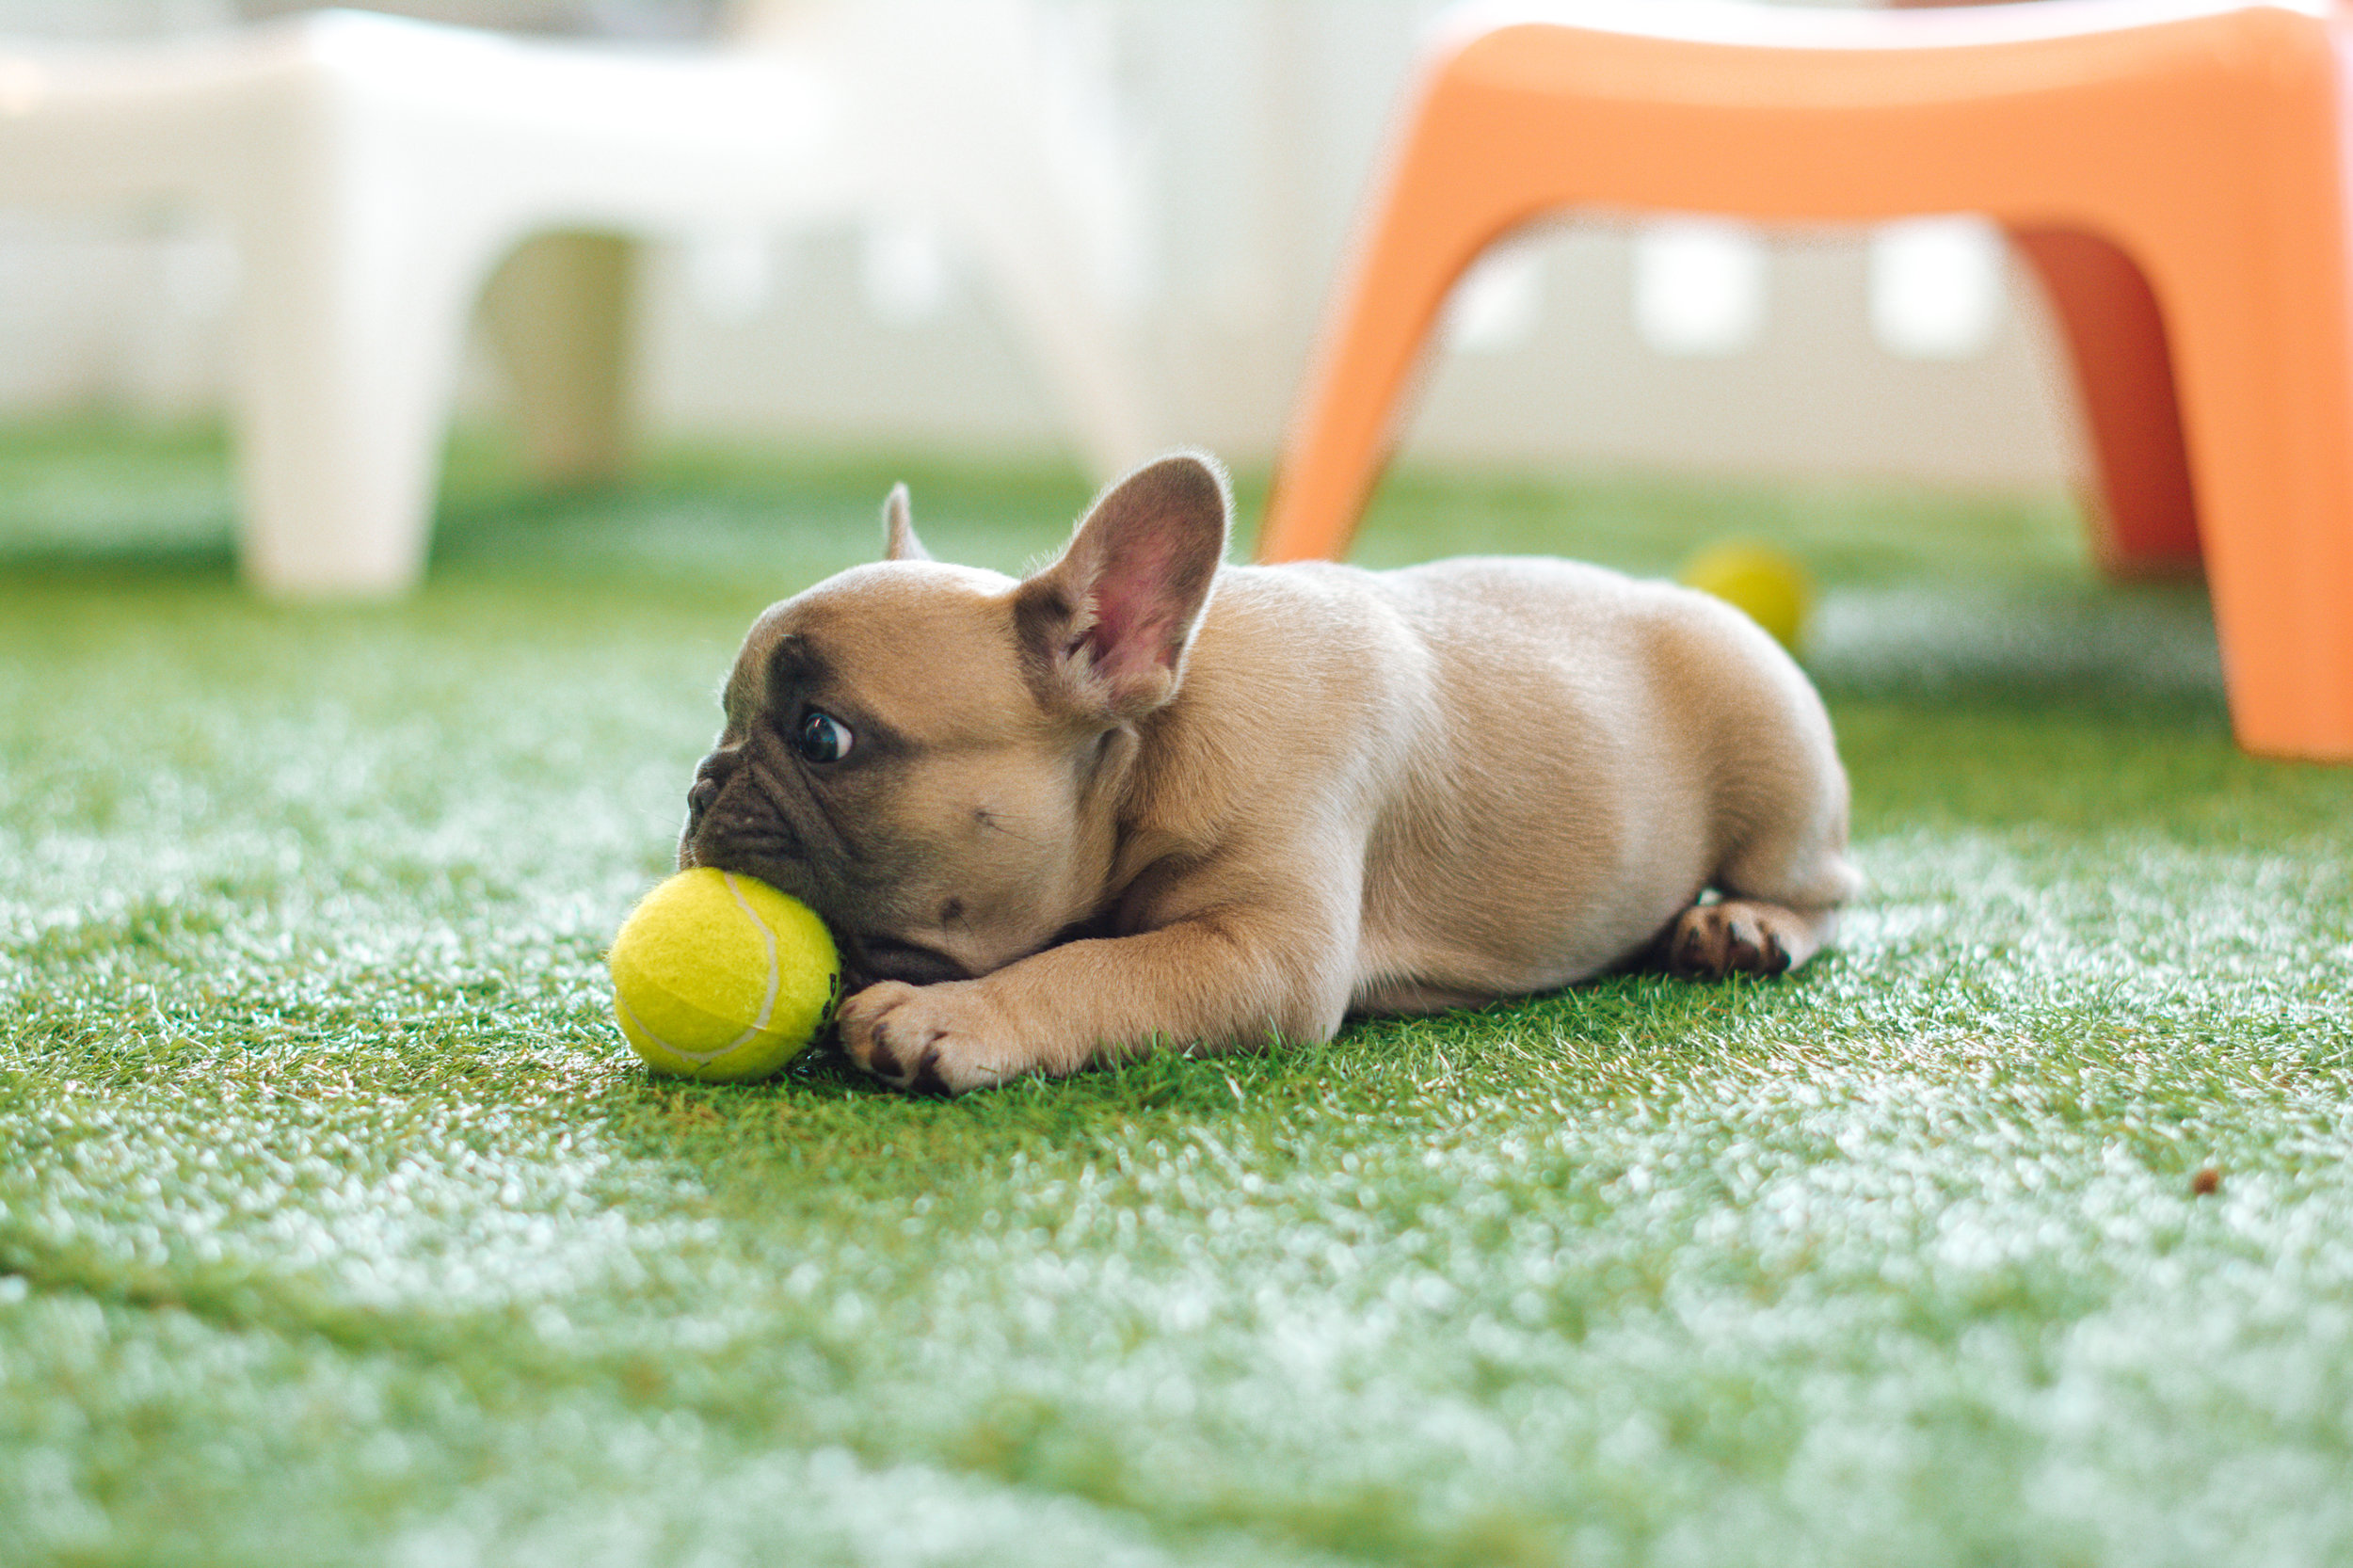 A puppy with a ball. Perfect.